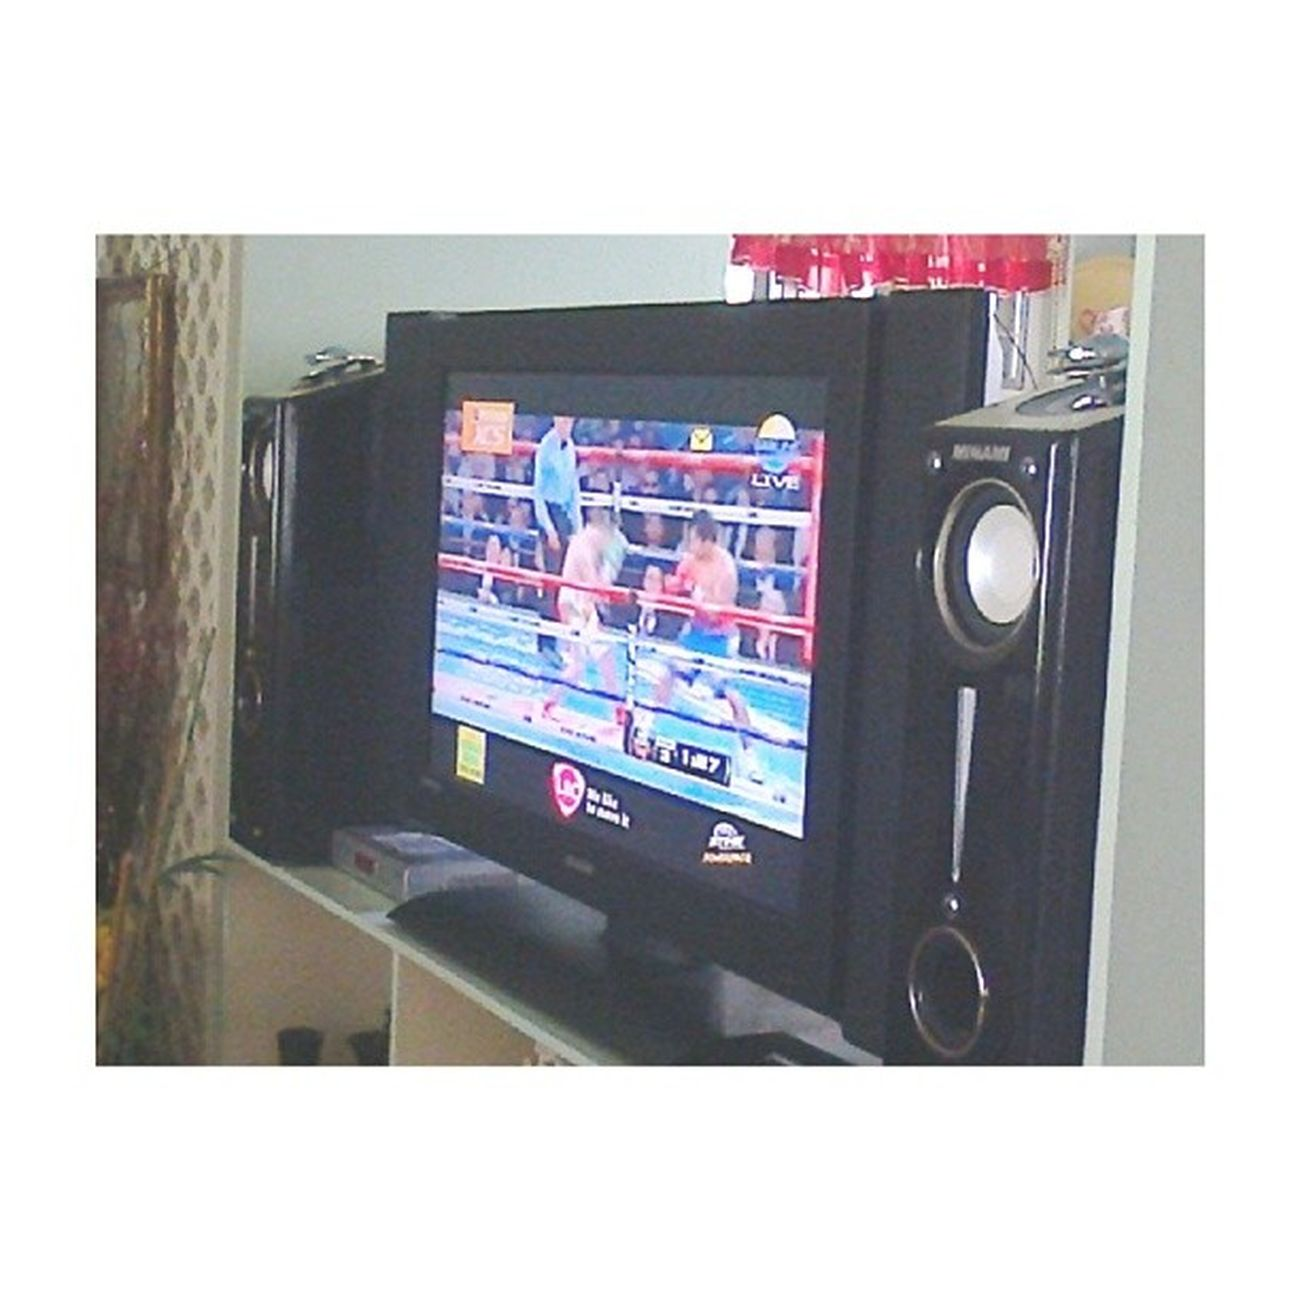 Got home from church and now watching Pacquiao vs Rios on payperview. Go Teampacquiao ! ??